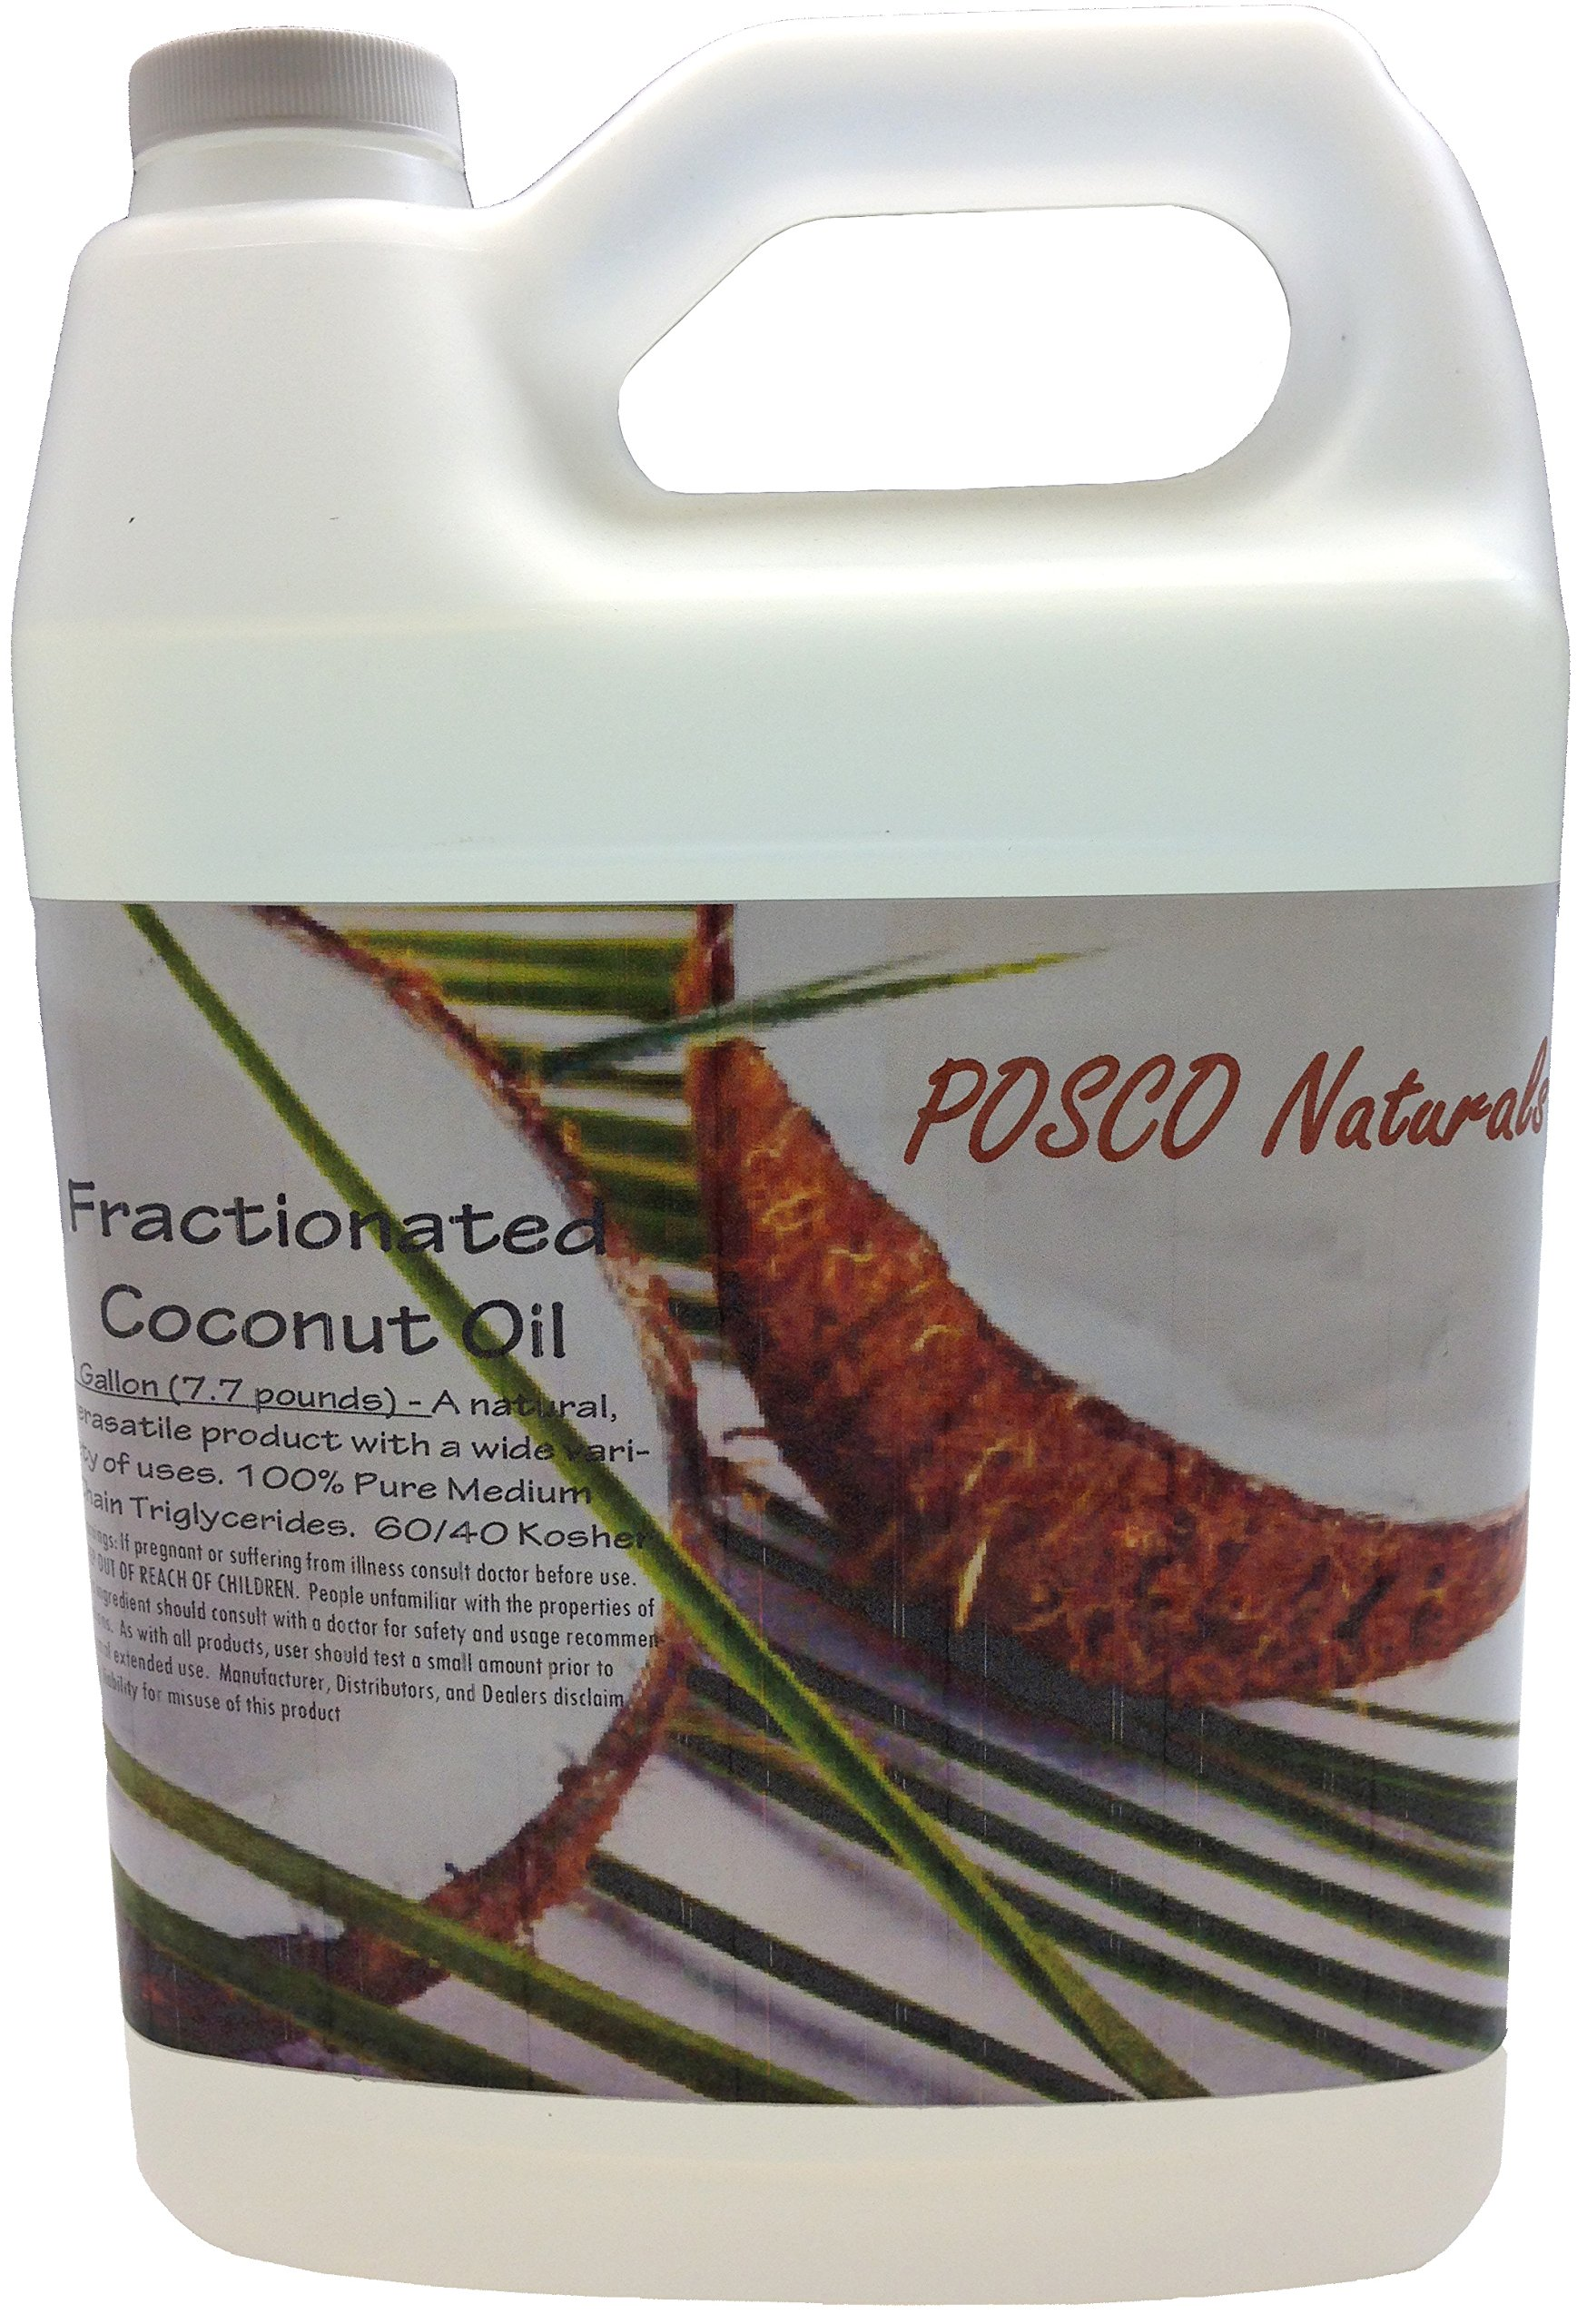 Fractionated Coconut Oil - 1 FULL Gallon (7.7 pounds) - 100% Pure